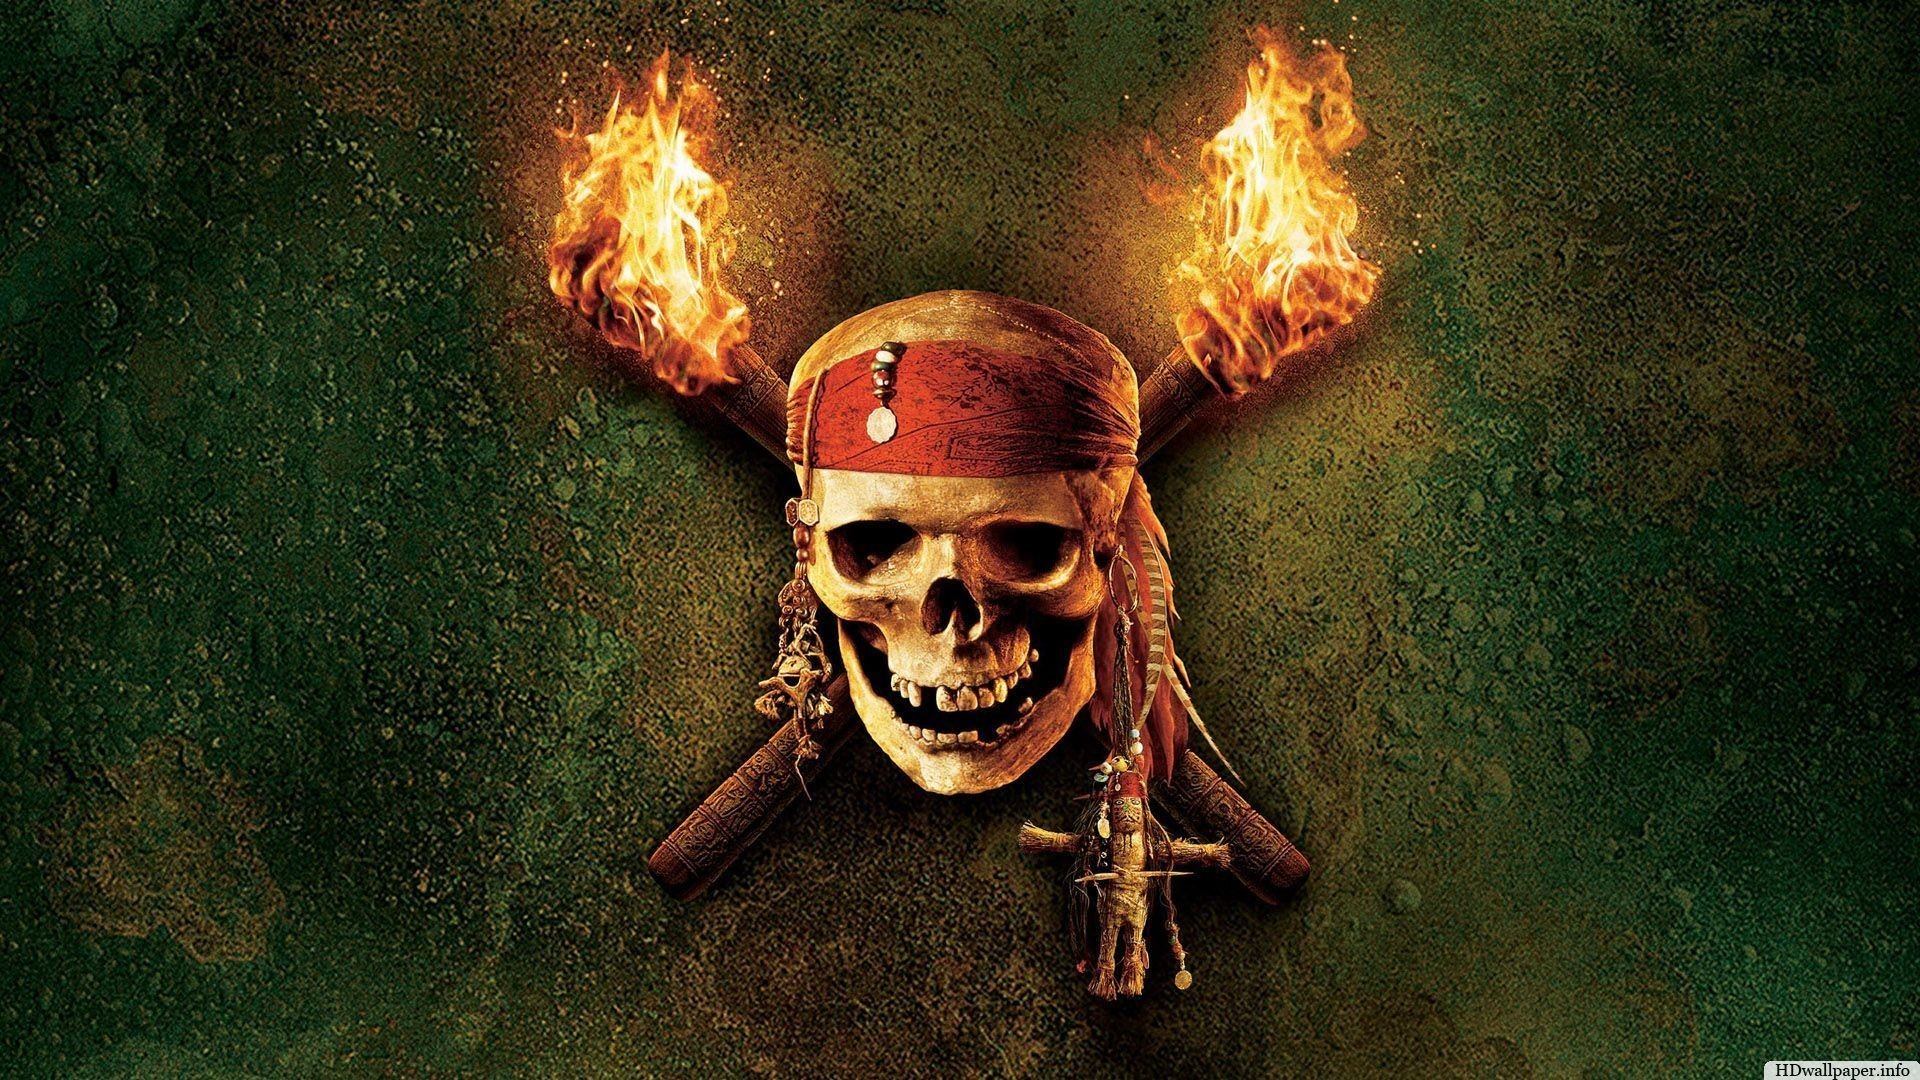 Pirates of the Caribbean Wallpapers (72+ images)